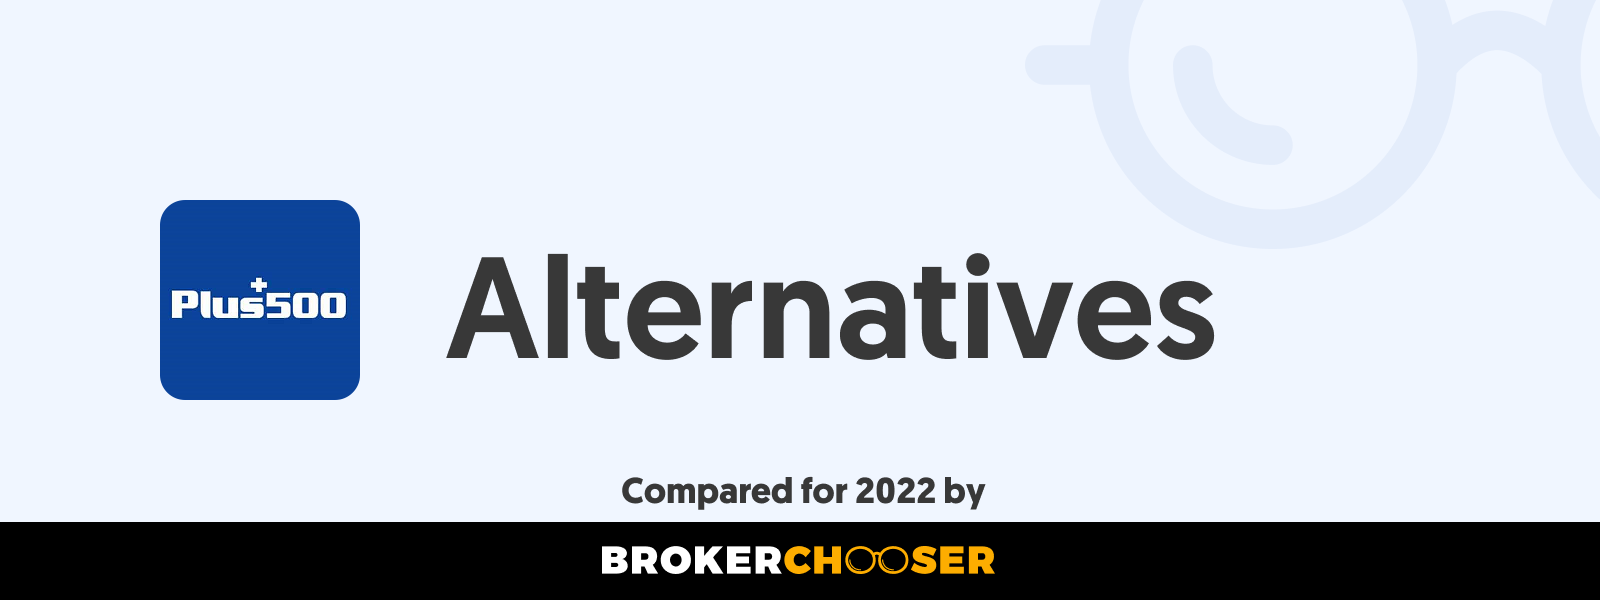 Plus500 Alternatives